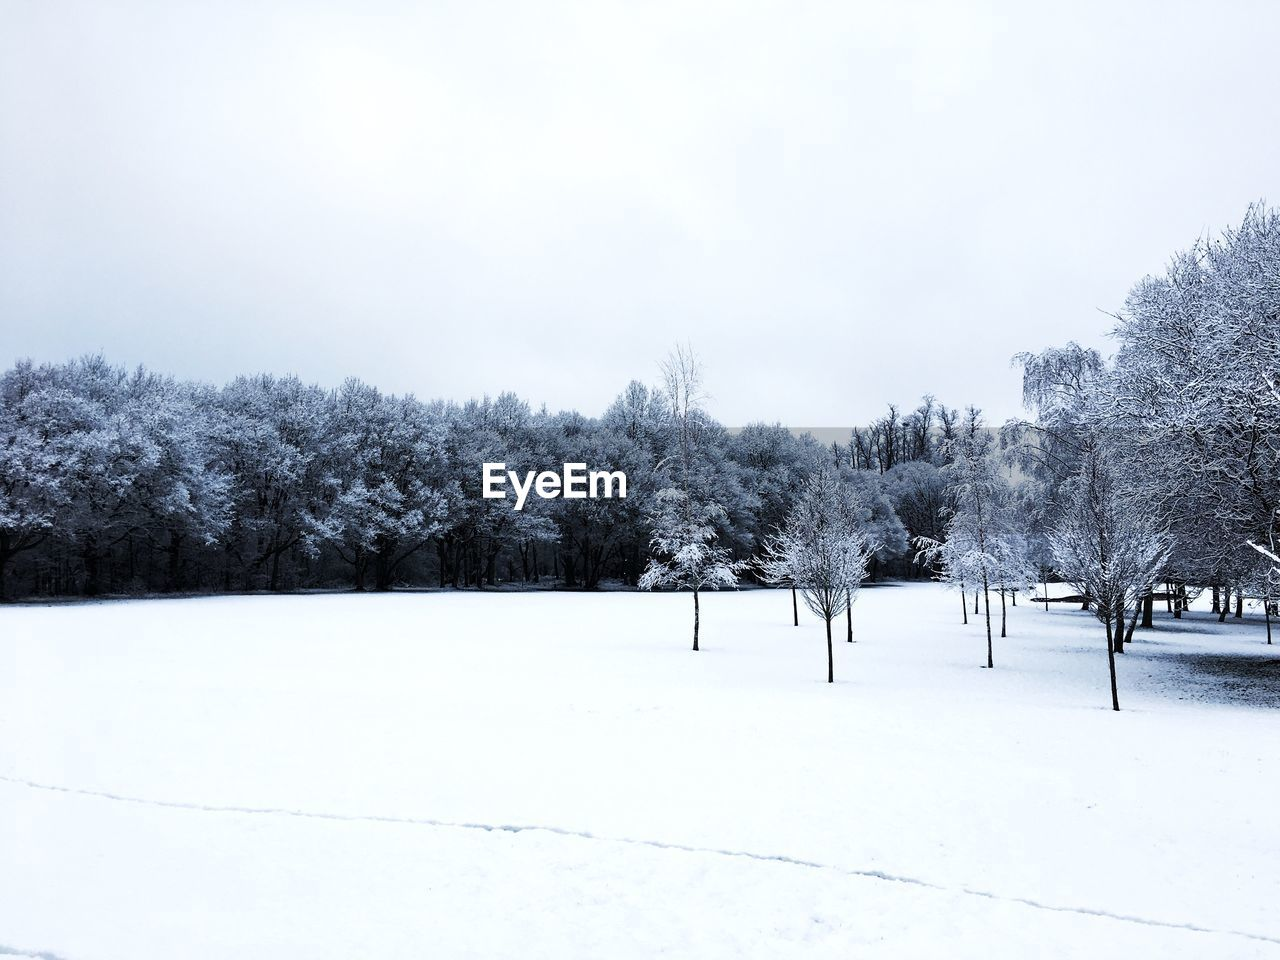 snow, winter, cold temperature, tree, plant, sky, beauty in nature, white color, nature, tranquility, landscape, scenics - nature, environment, day, no people, tranquil scene, field, land, covering, outdoors, snowing